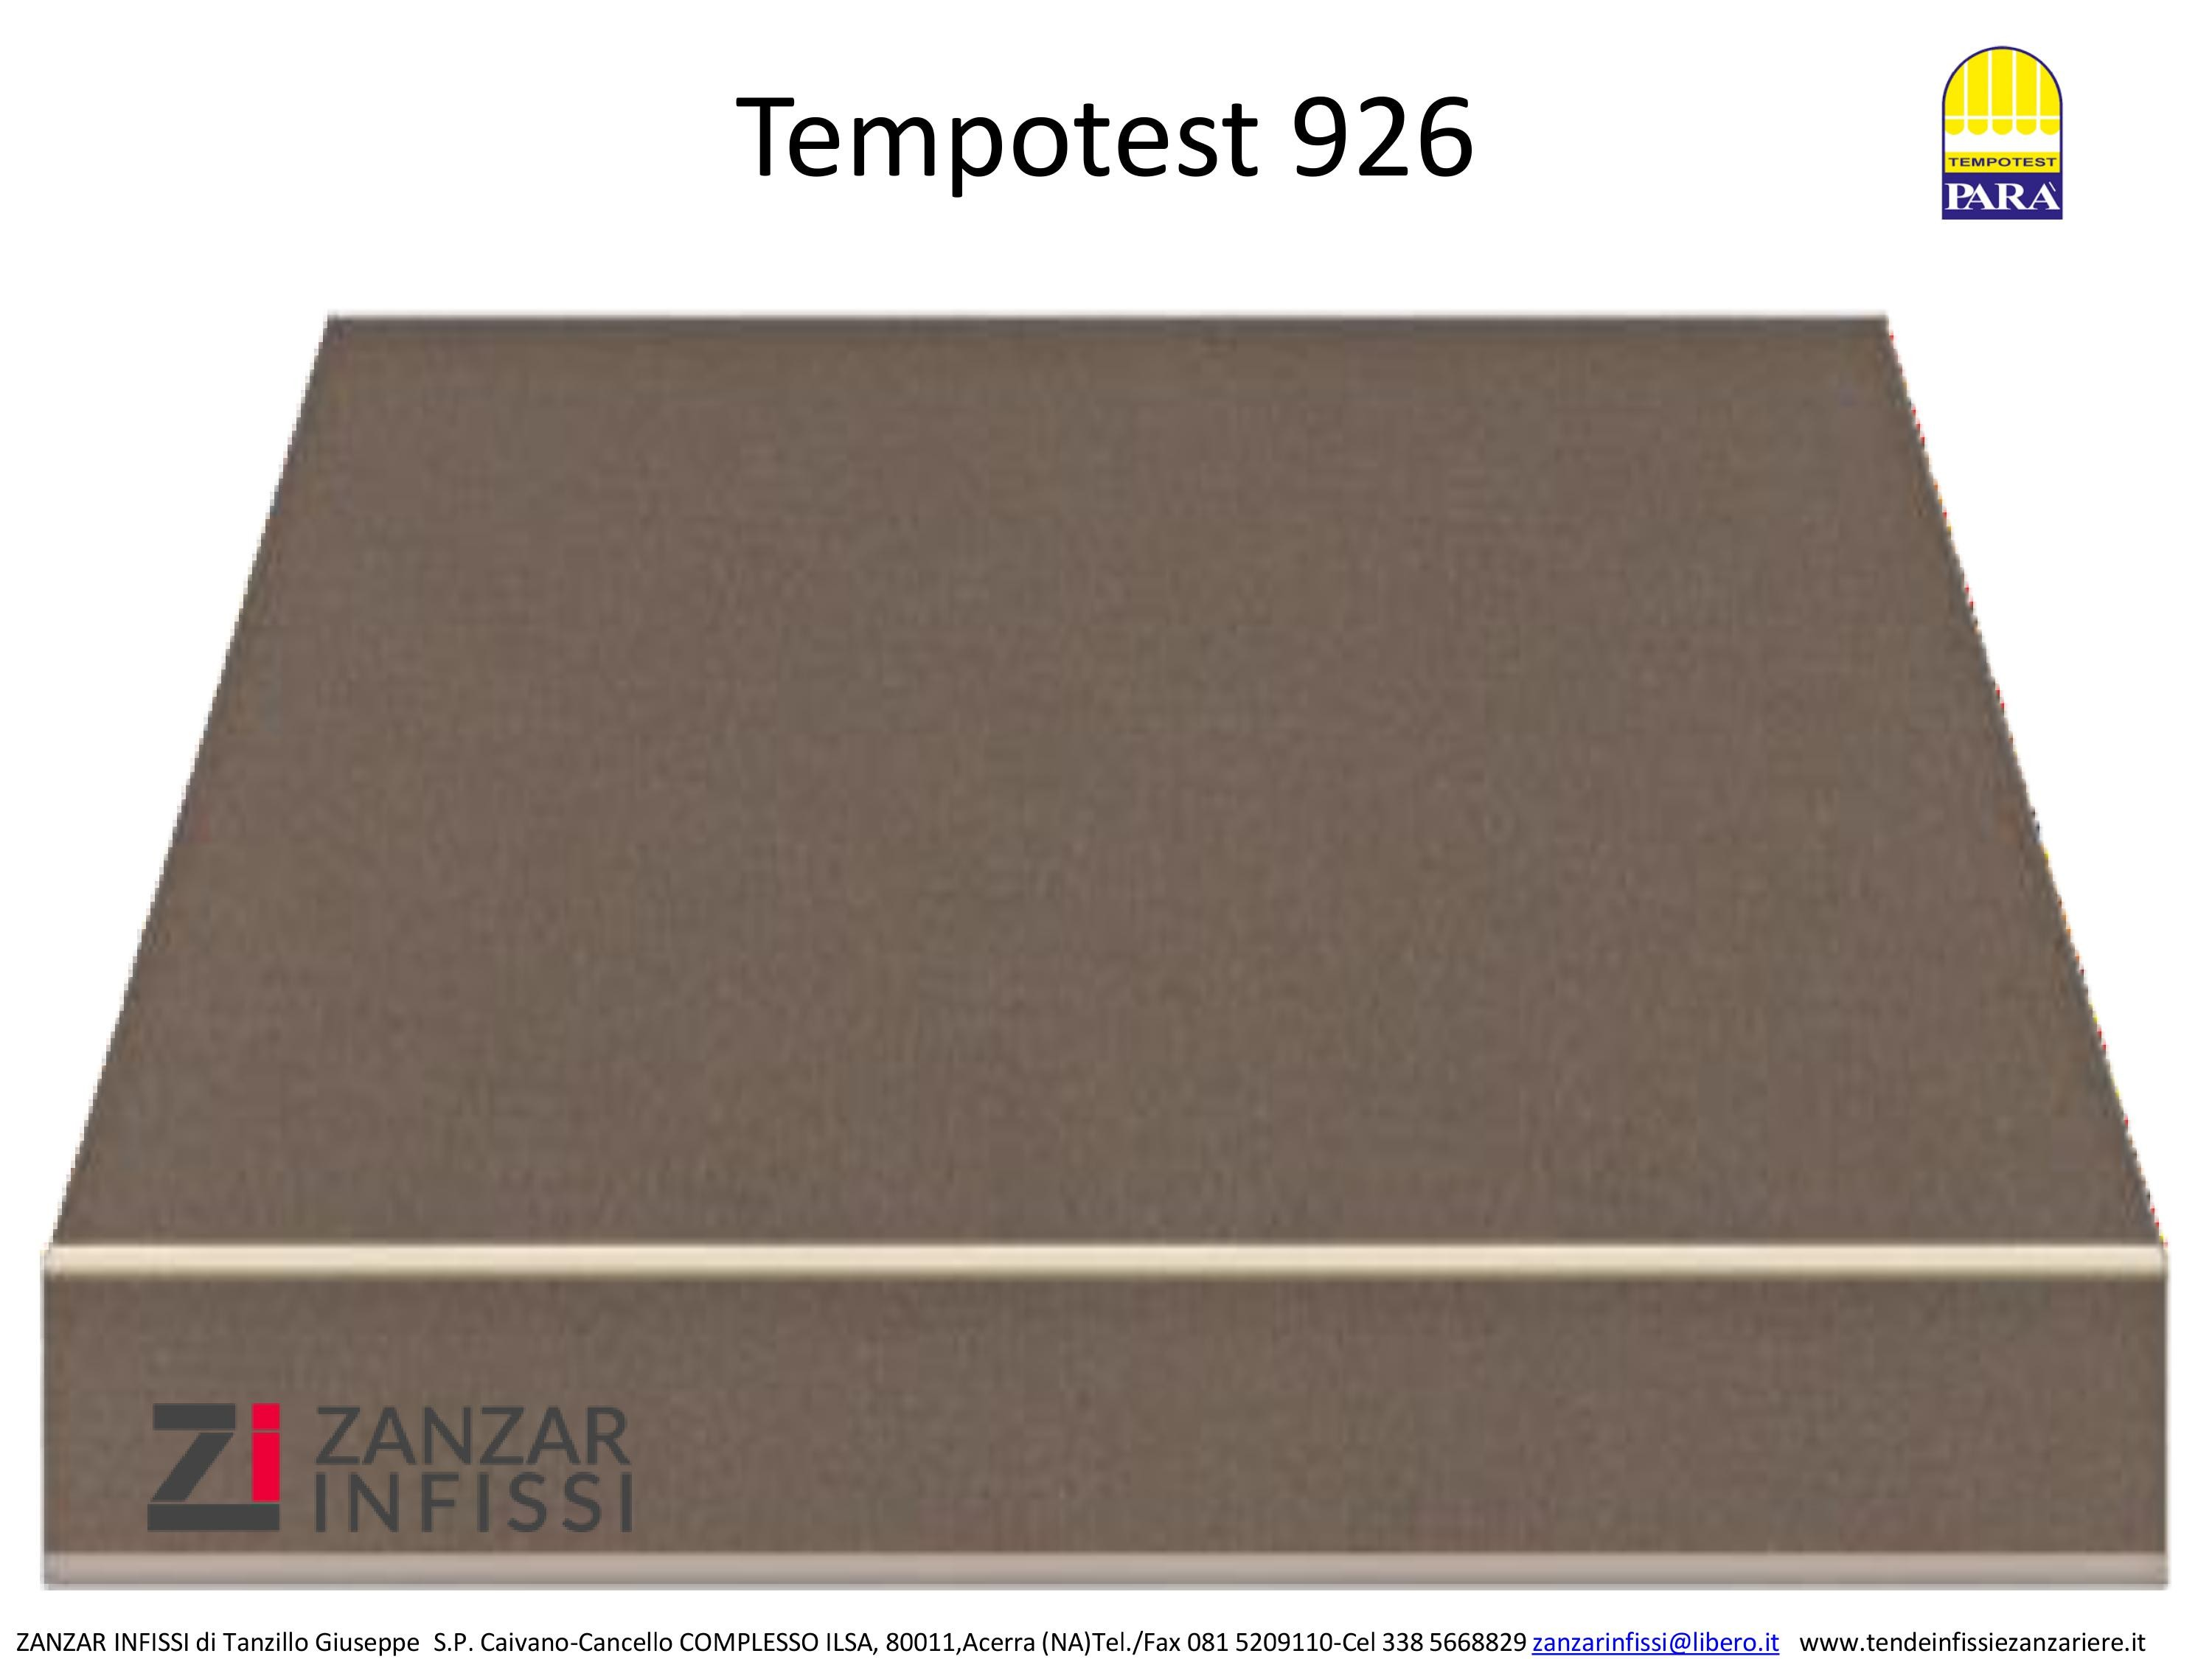 Tempotest 926